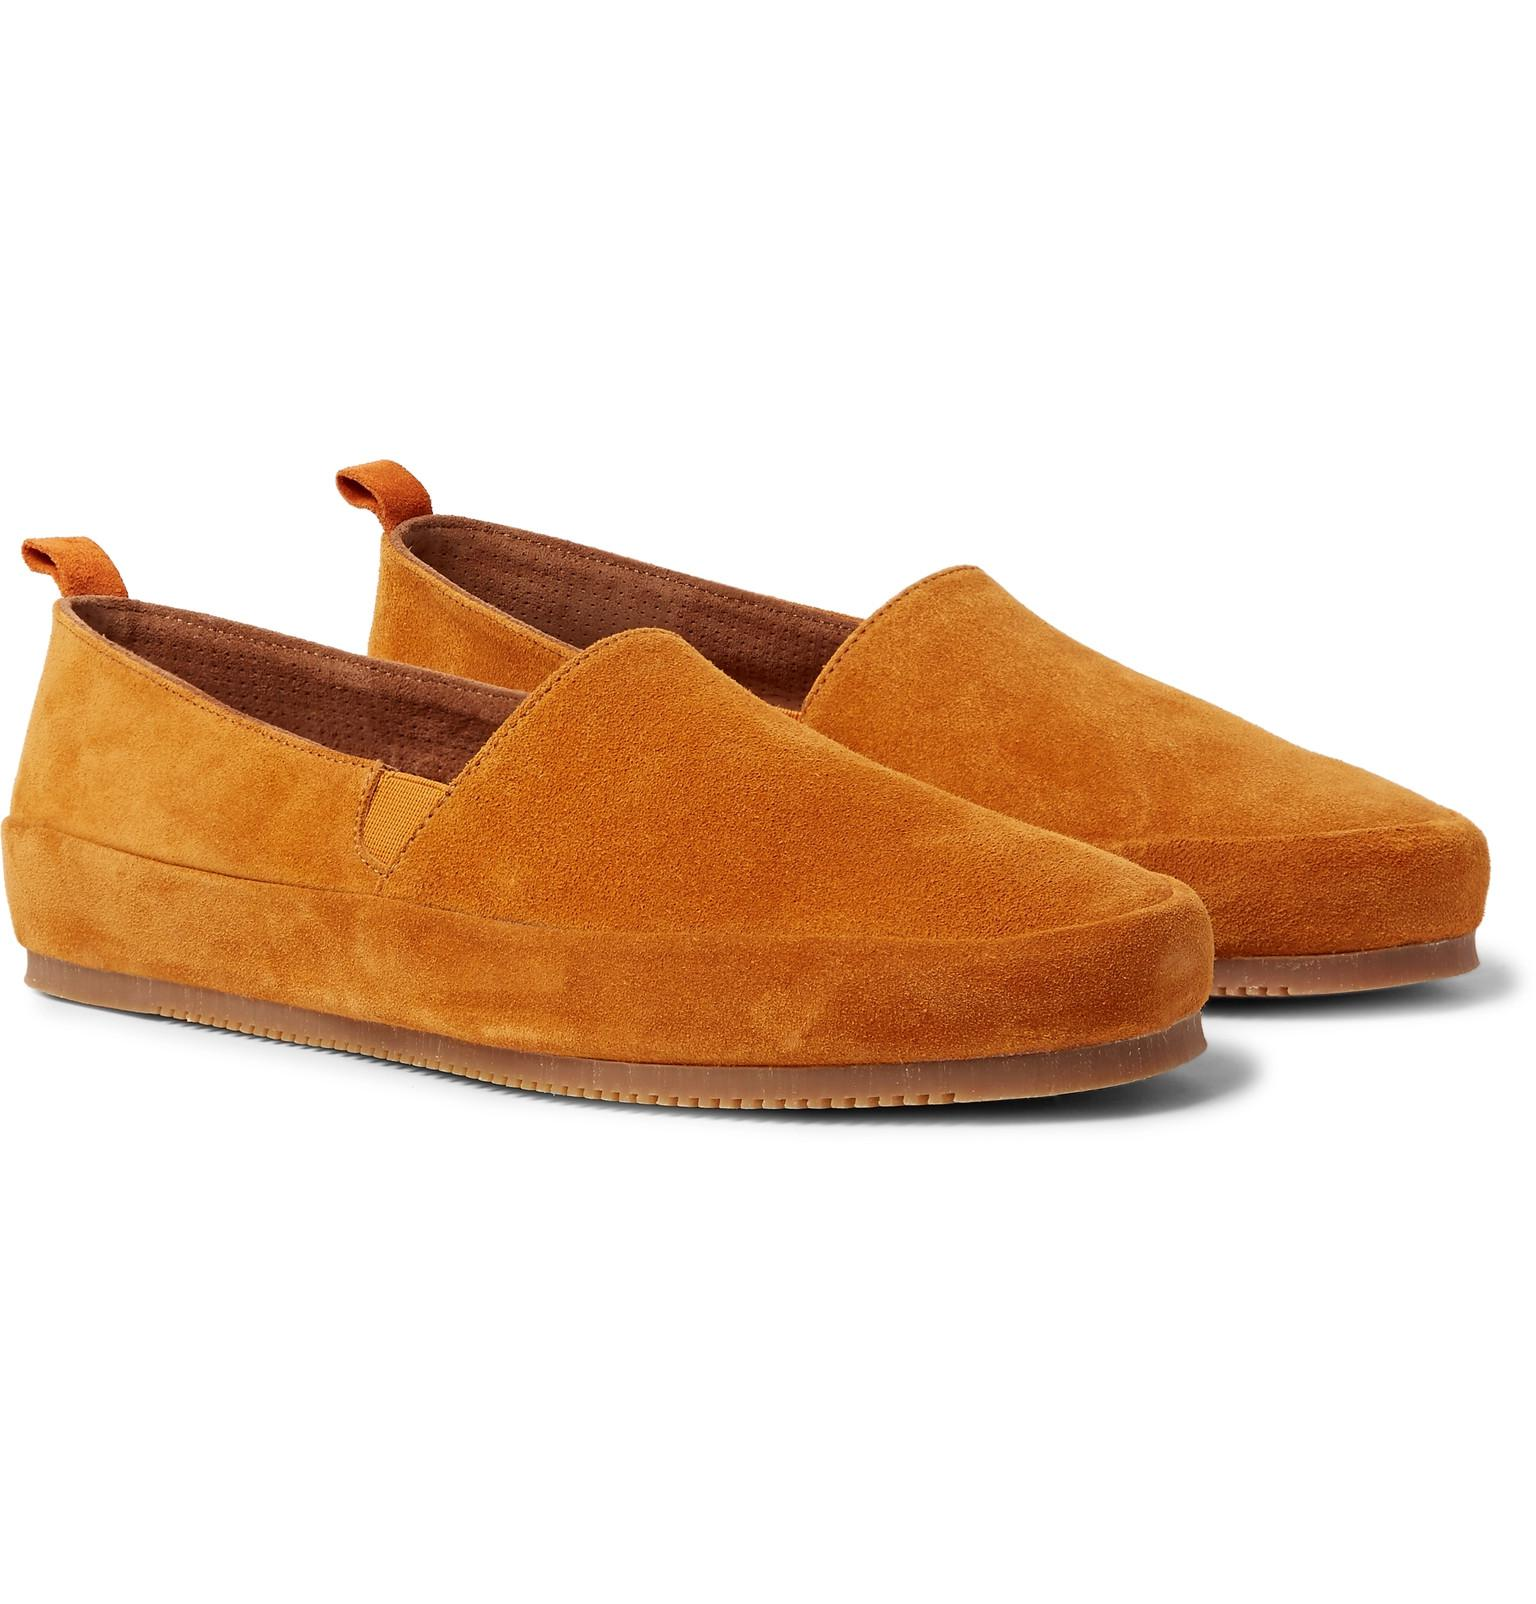 Suede Backless Loafers Mulo n6rpye